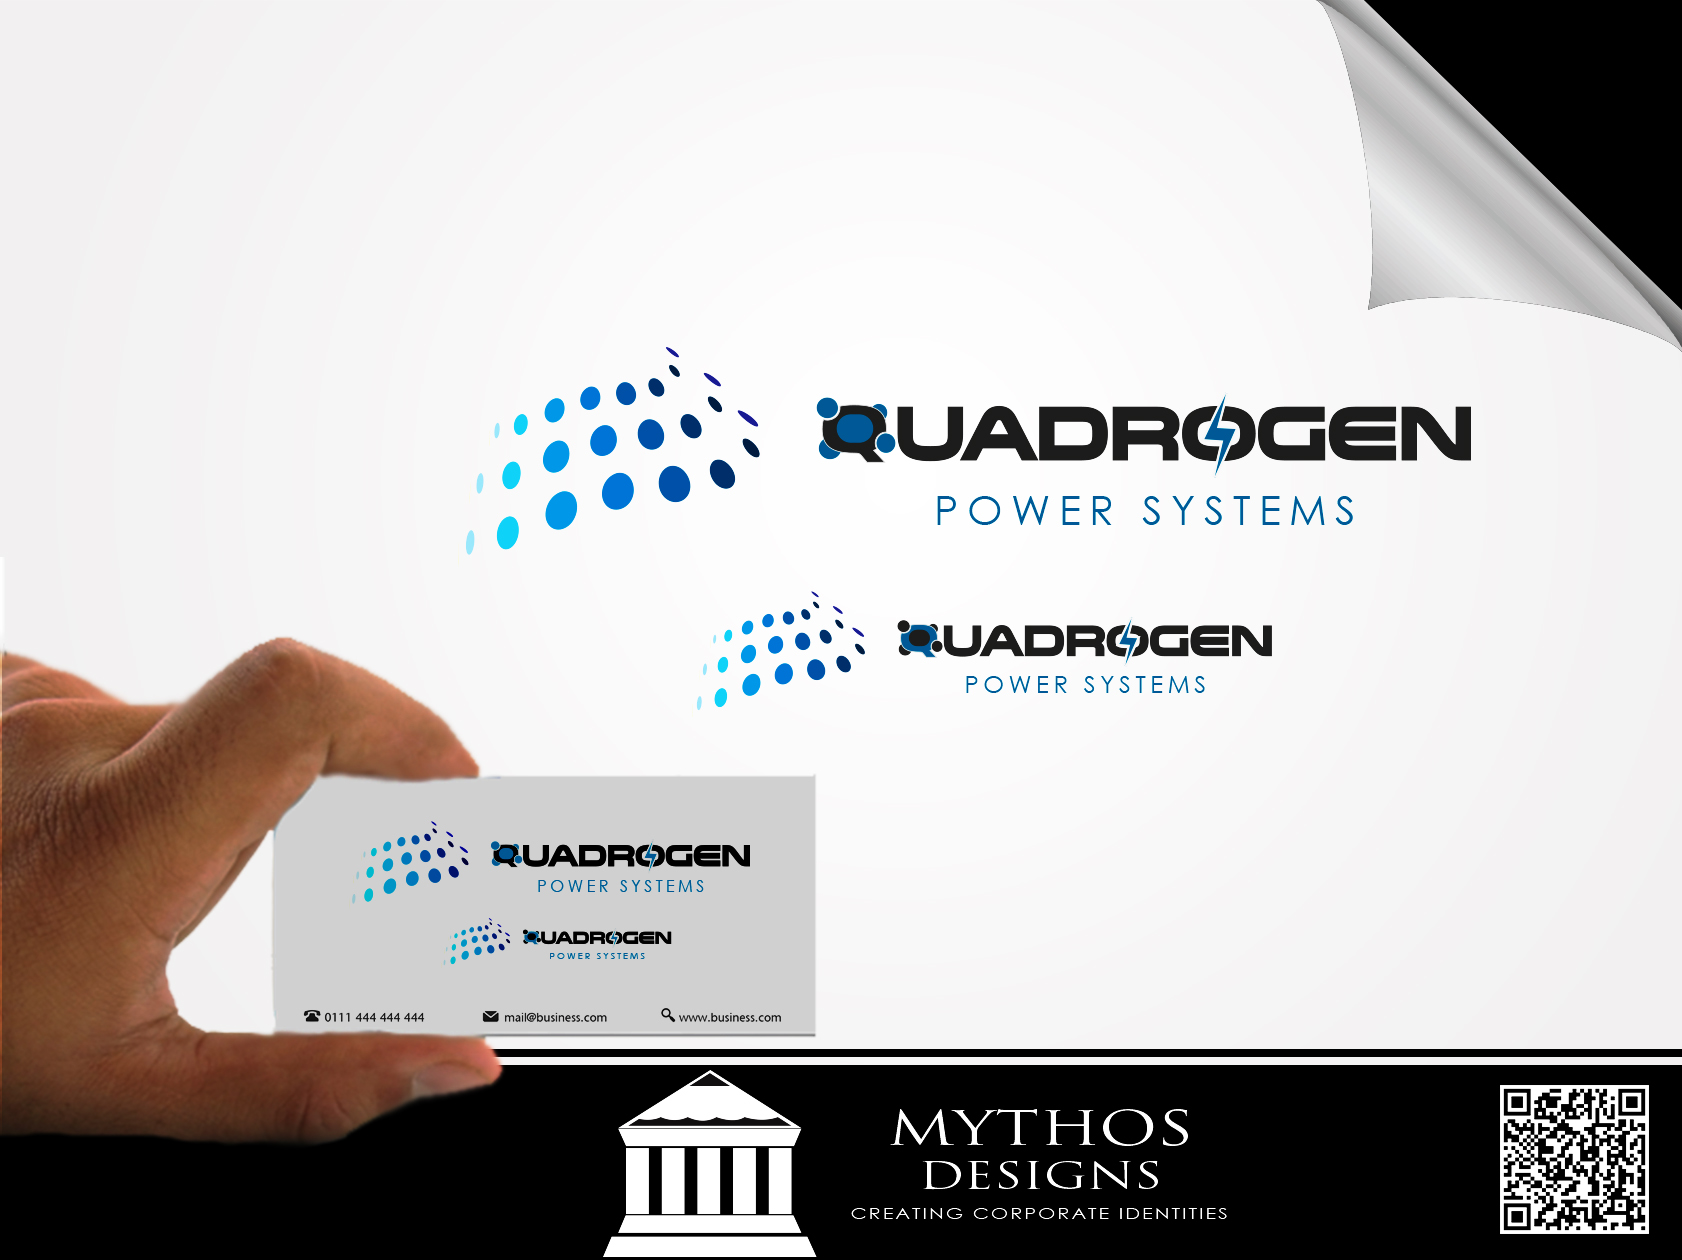 Logo Design by Mythos Designs - Entry No. 129 in the Logo Design Contest New Logo Design for Quadrogen Power Systems, Inc.